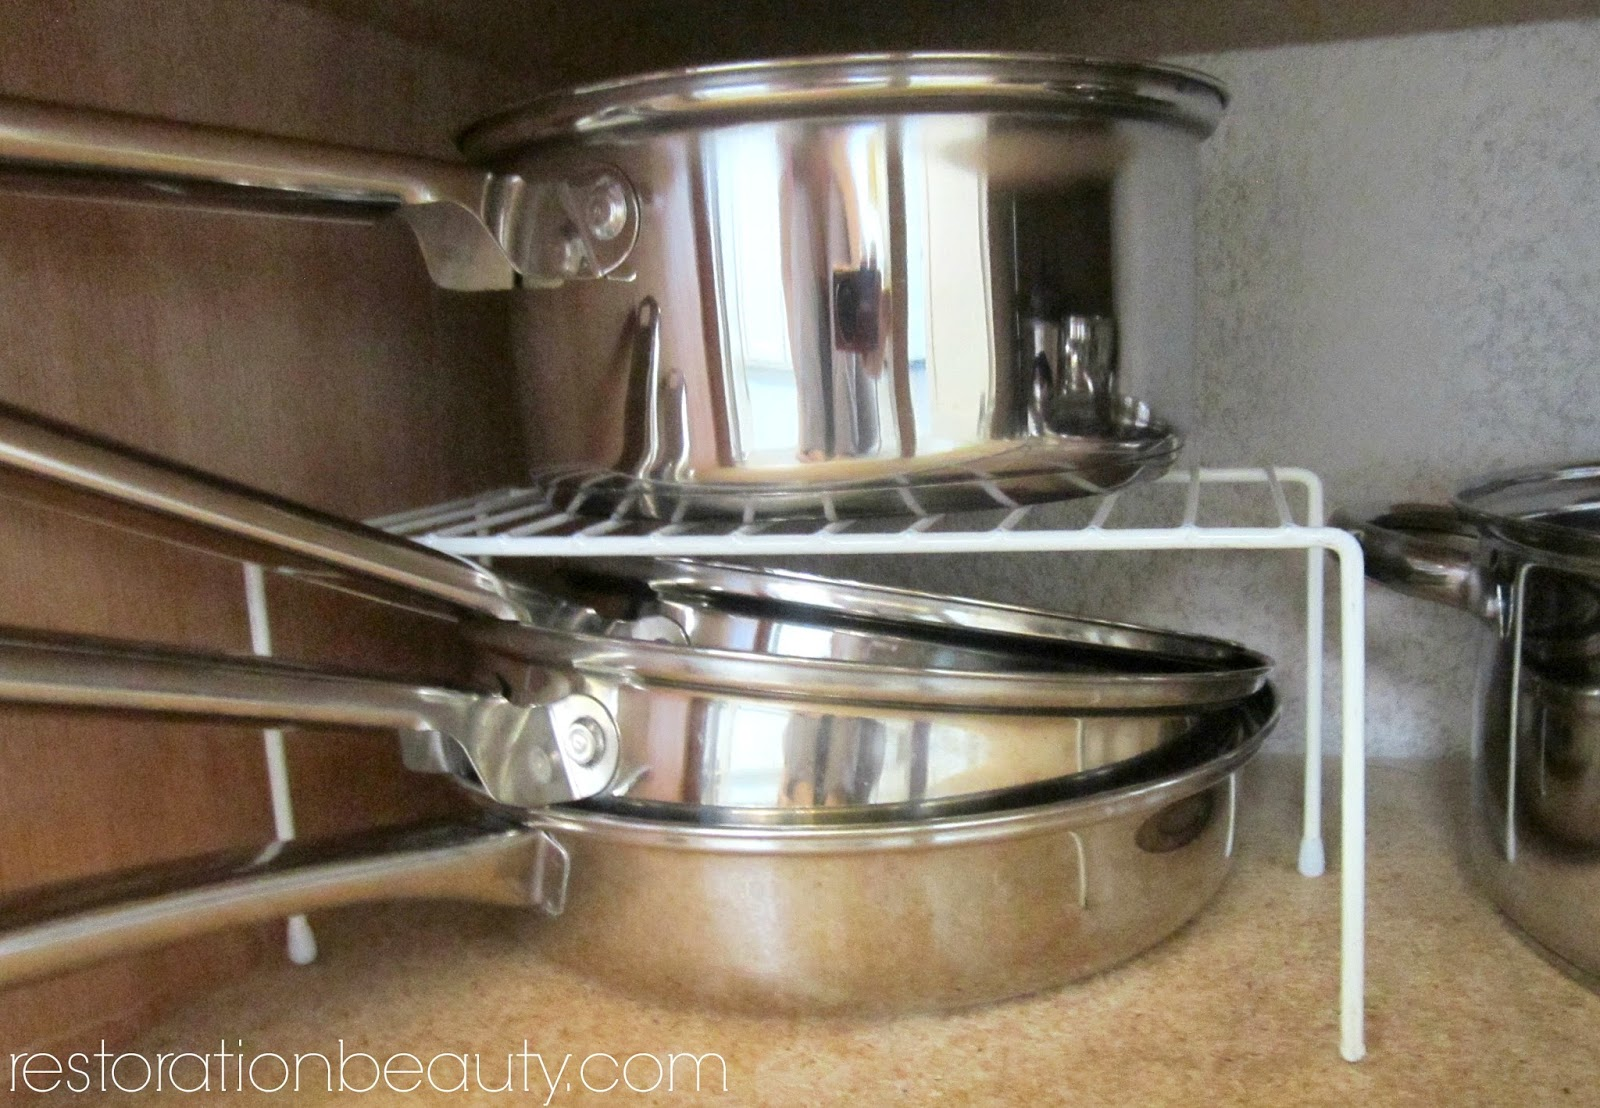 Restoration Beauty: Organizing Pots+Pans+Bake Ware With Dollar ...